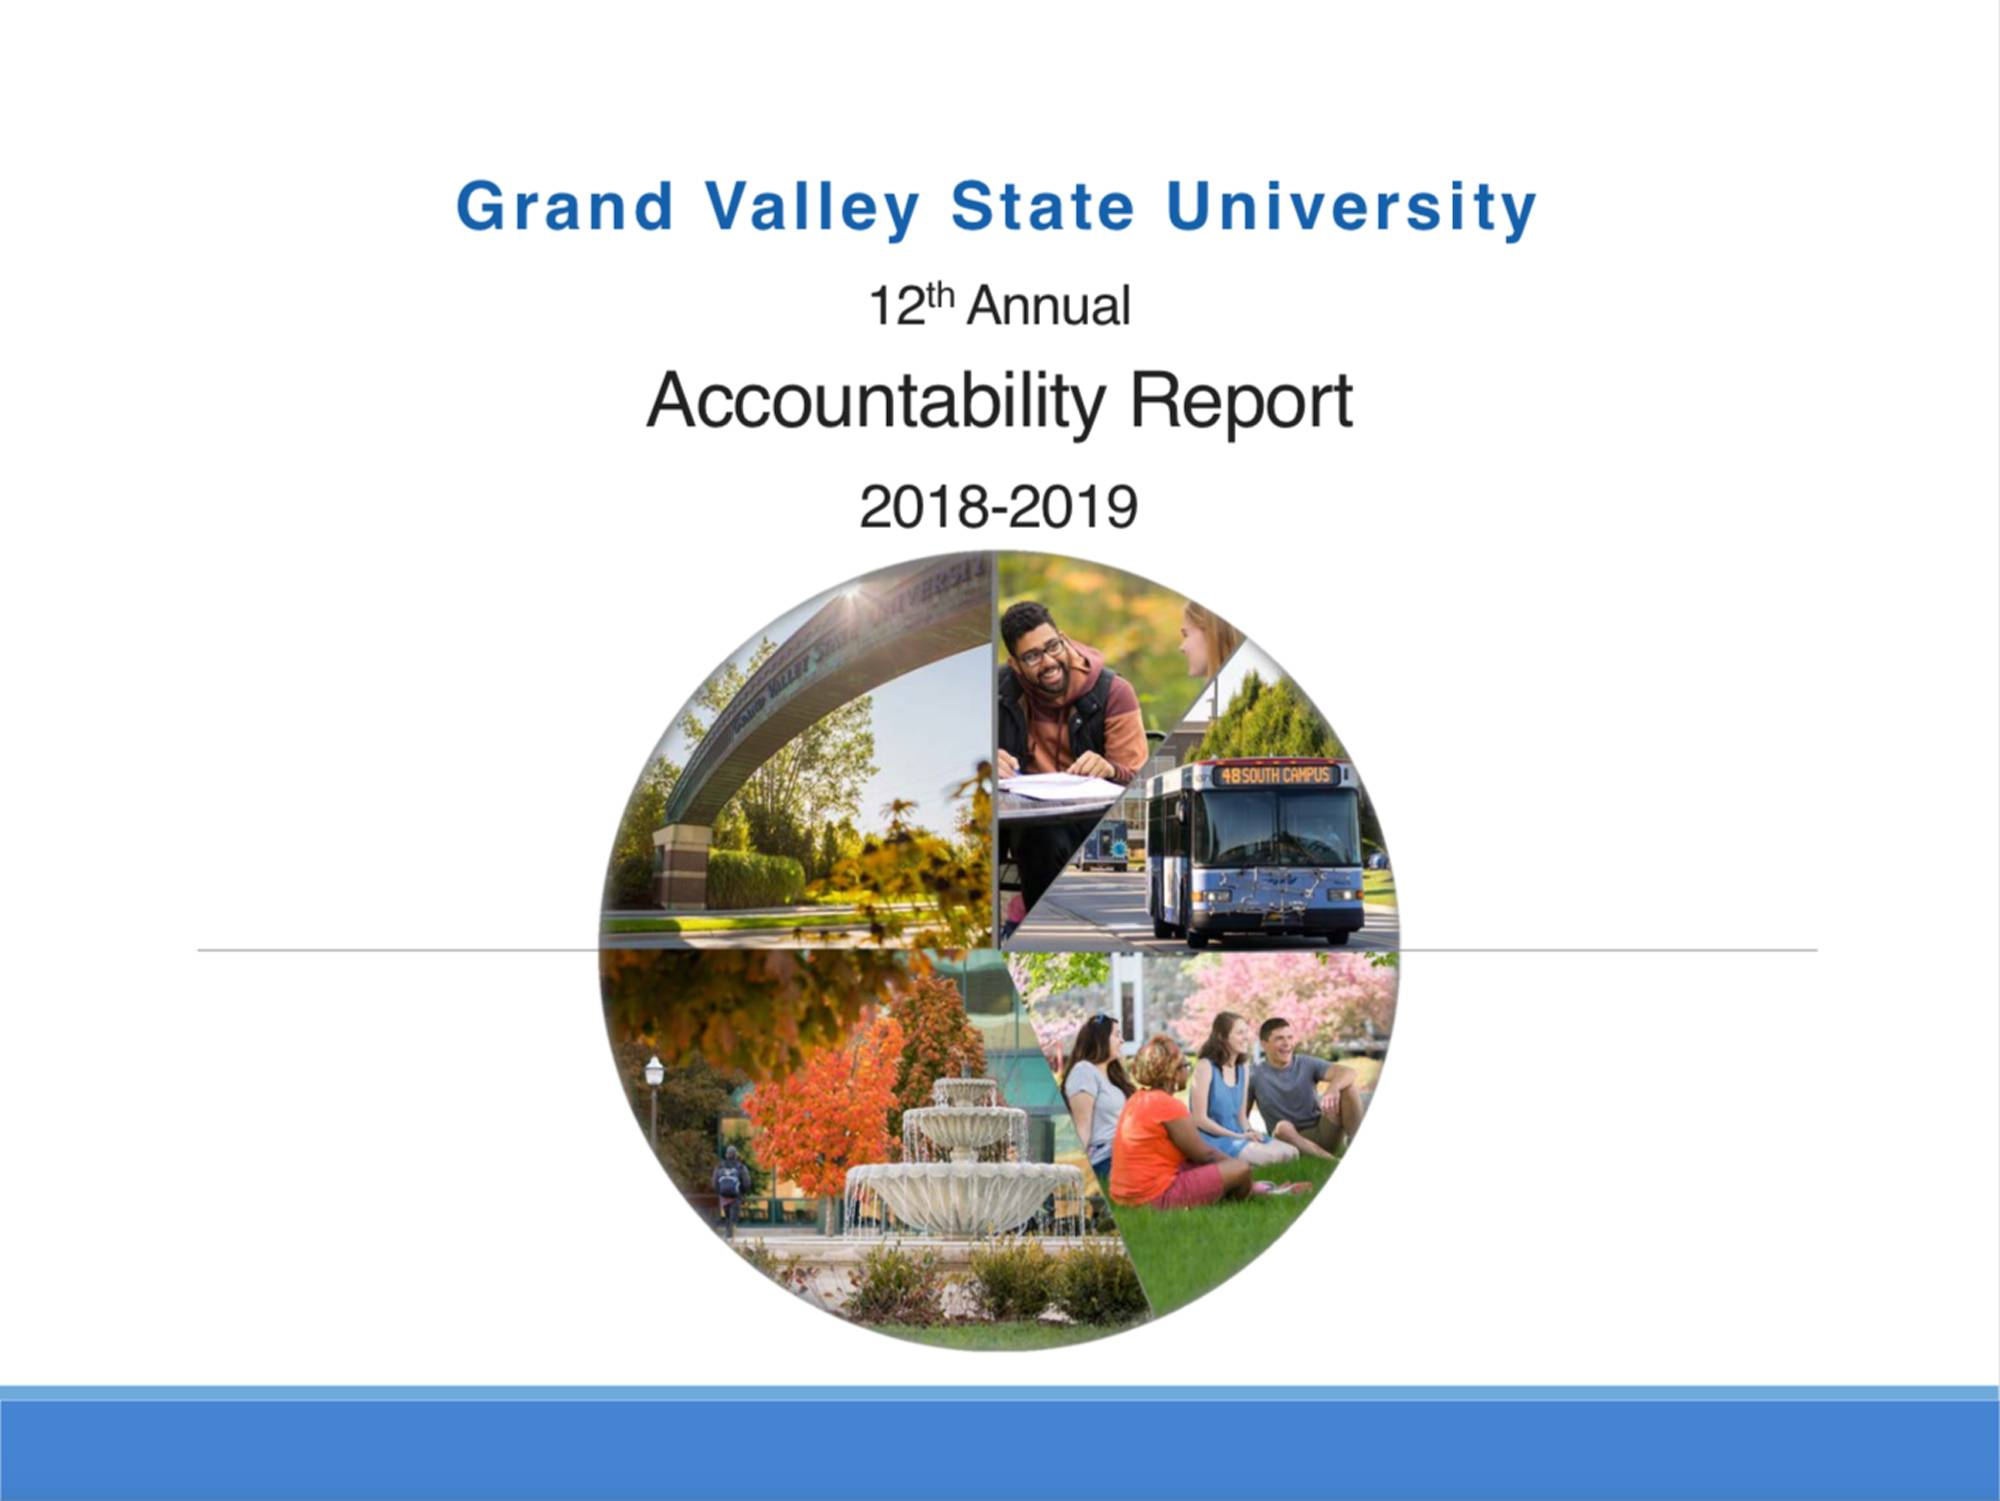 An image of the cover page of the 2018 Grand Valley accountability report. The cover features five photographs arranged in the shape of a pie chart. One is of the arch over the entrance to campus. Second photo is a student sitting at a picnic table studying. Third is a picture of the campus bus driving down campus drive. Fourth is a picture of the fountain outside of student services, and fifth is a group of students laughing while studying on the grass near Lake Superior Hall.